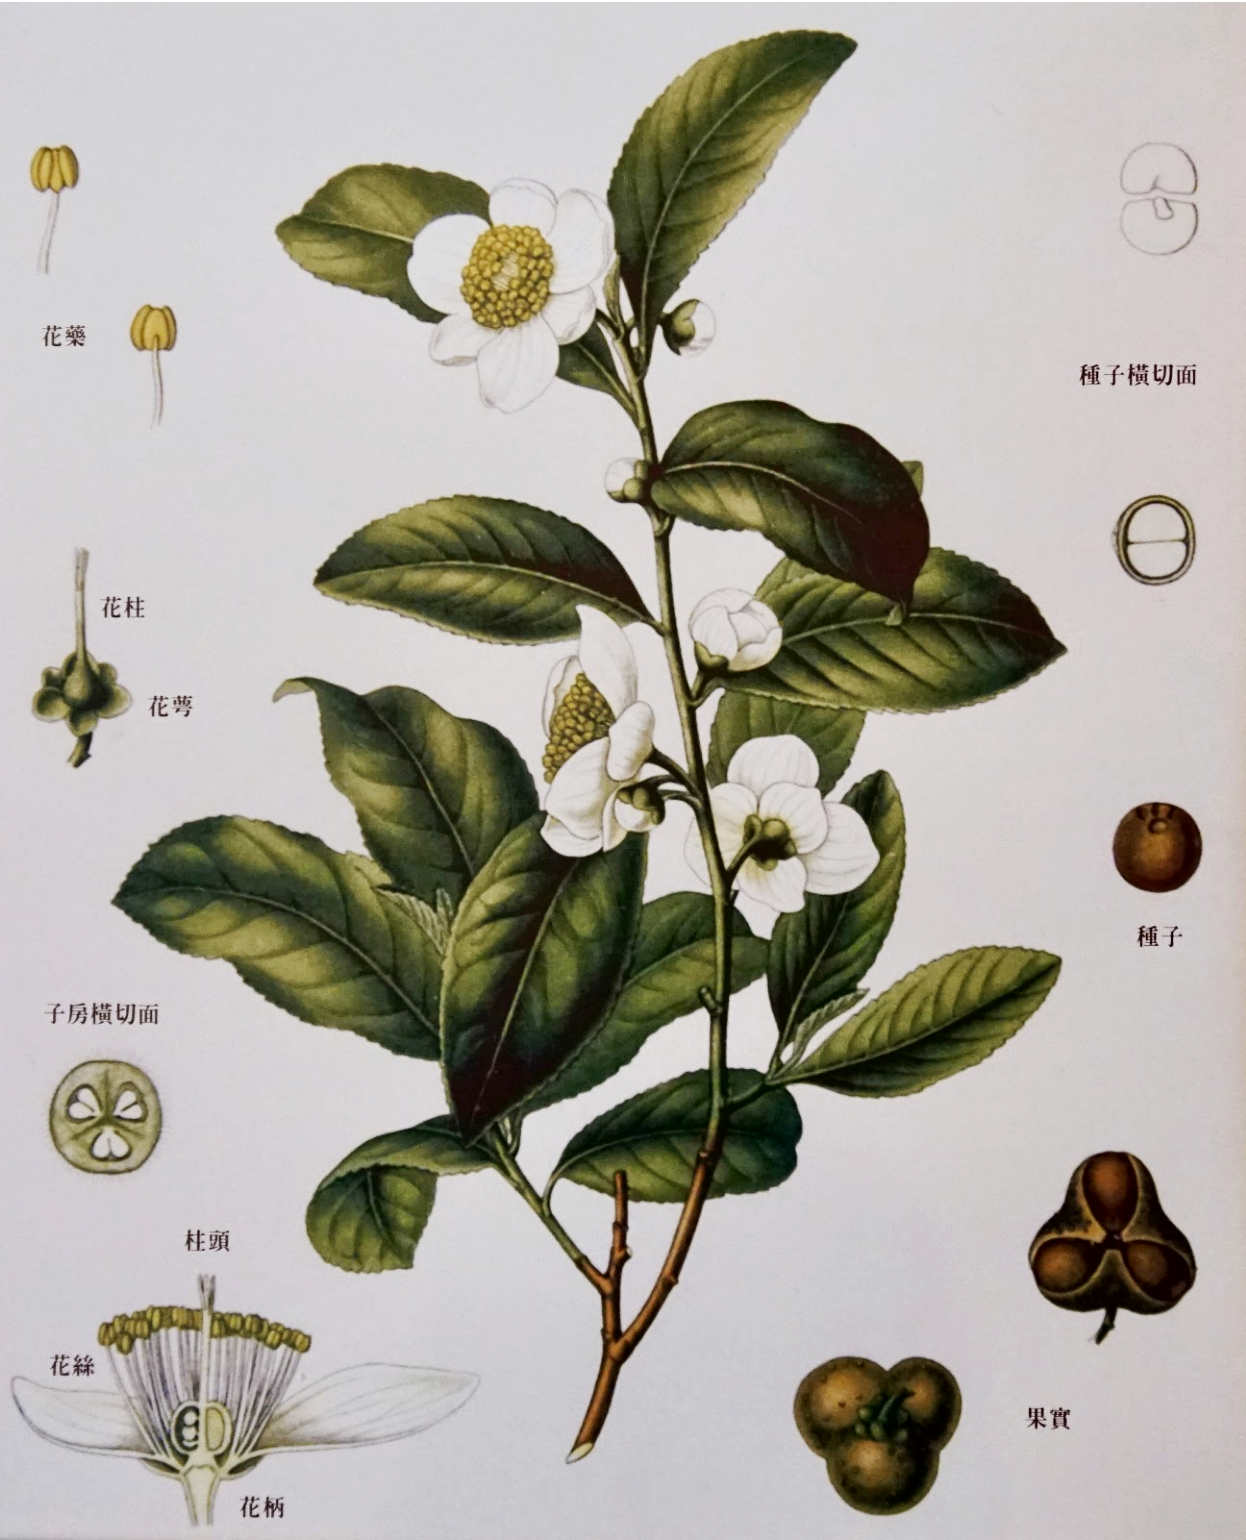 Image of a Camellia Sinensis Tea Plant displayed at the Pinglin Tea Museum in Taiwan.